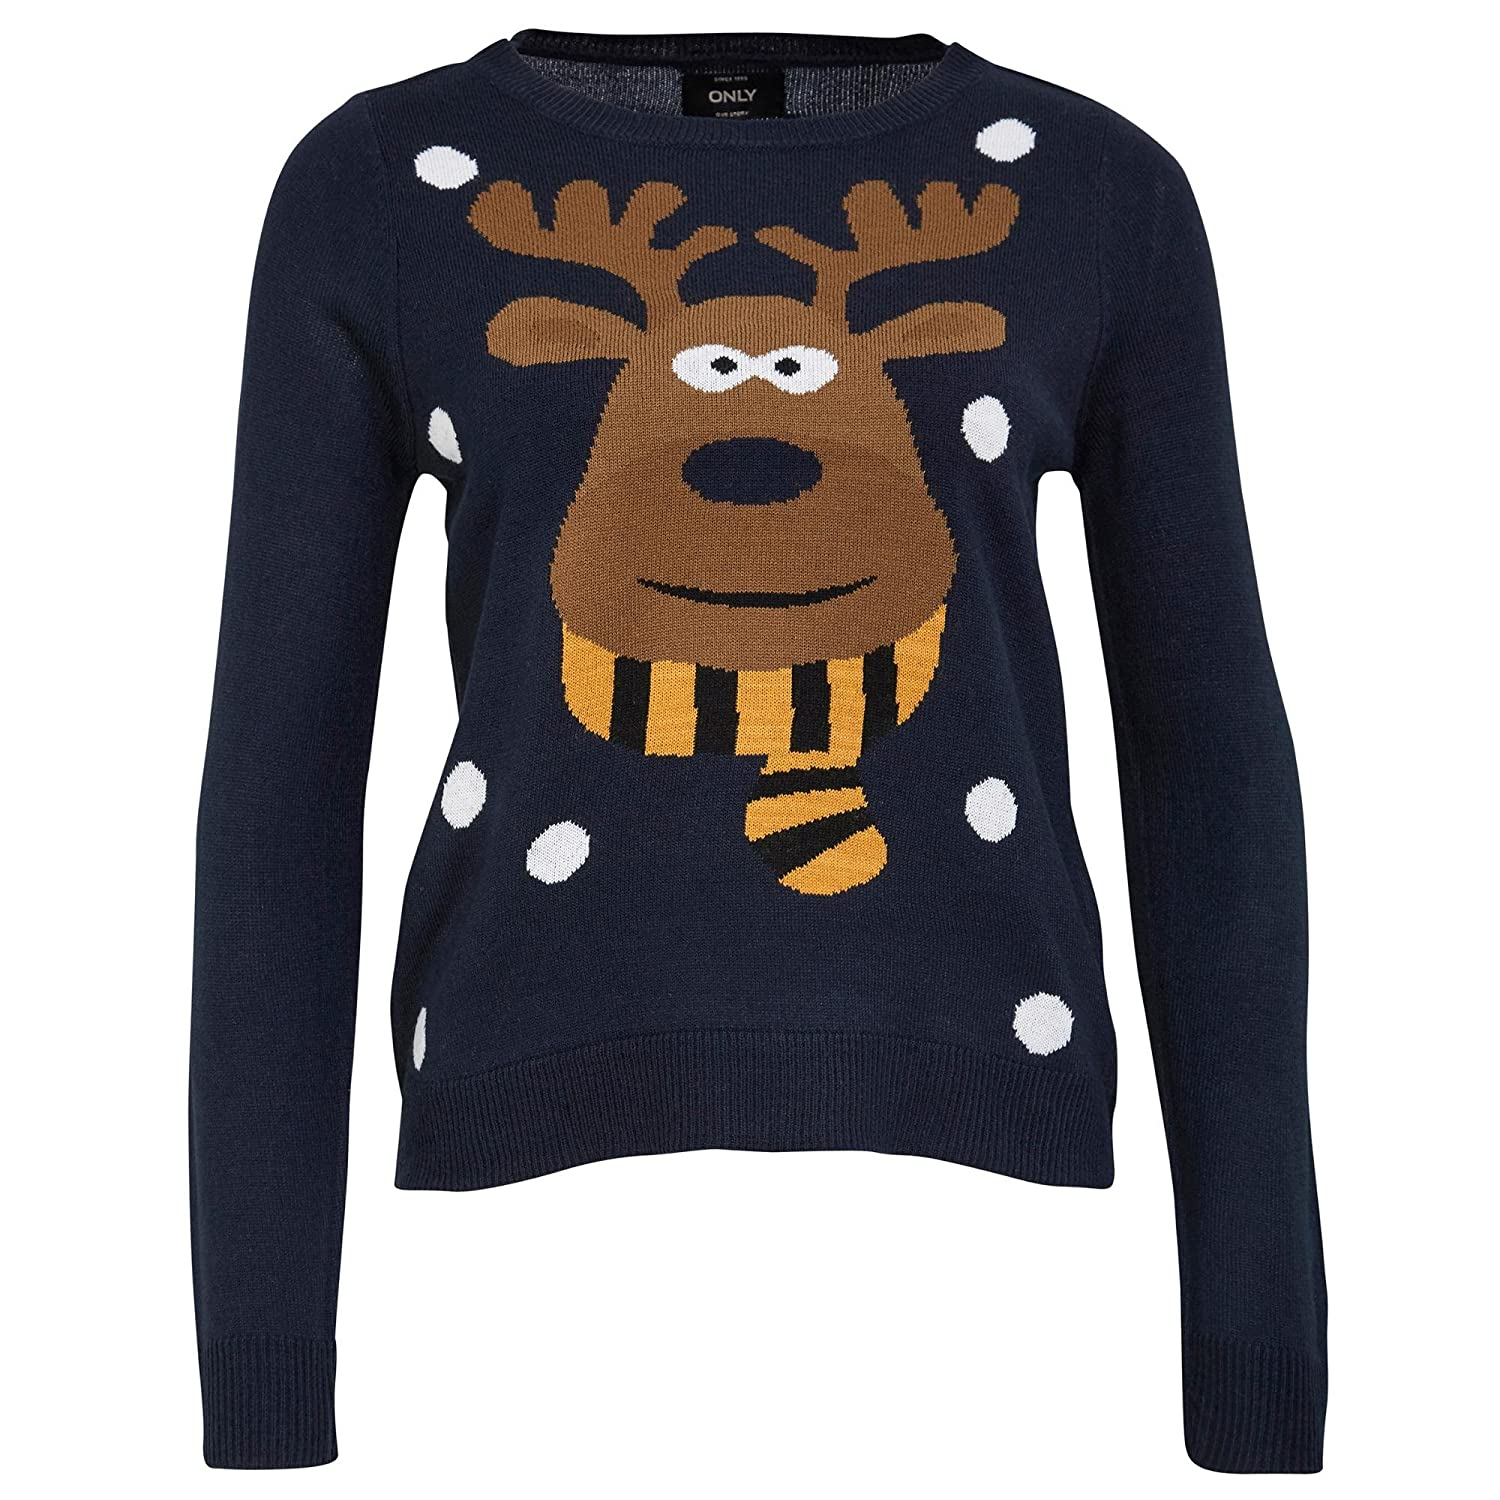 9c9b3b69c7 new Only Damen Pullover X-mas Weihnahts Elch onlX-RED NOSE L/S KNT ...